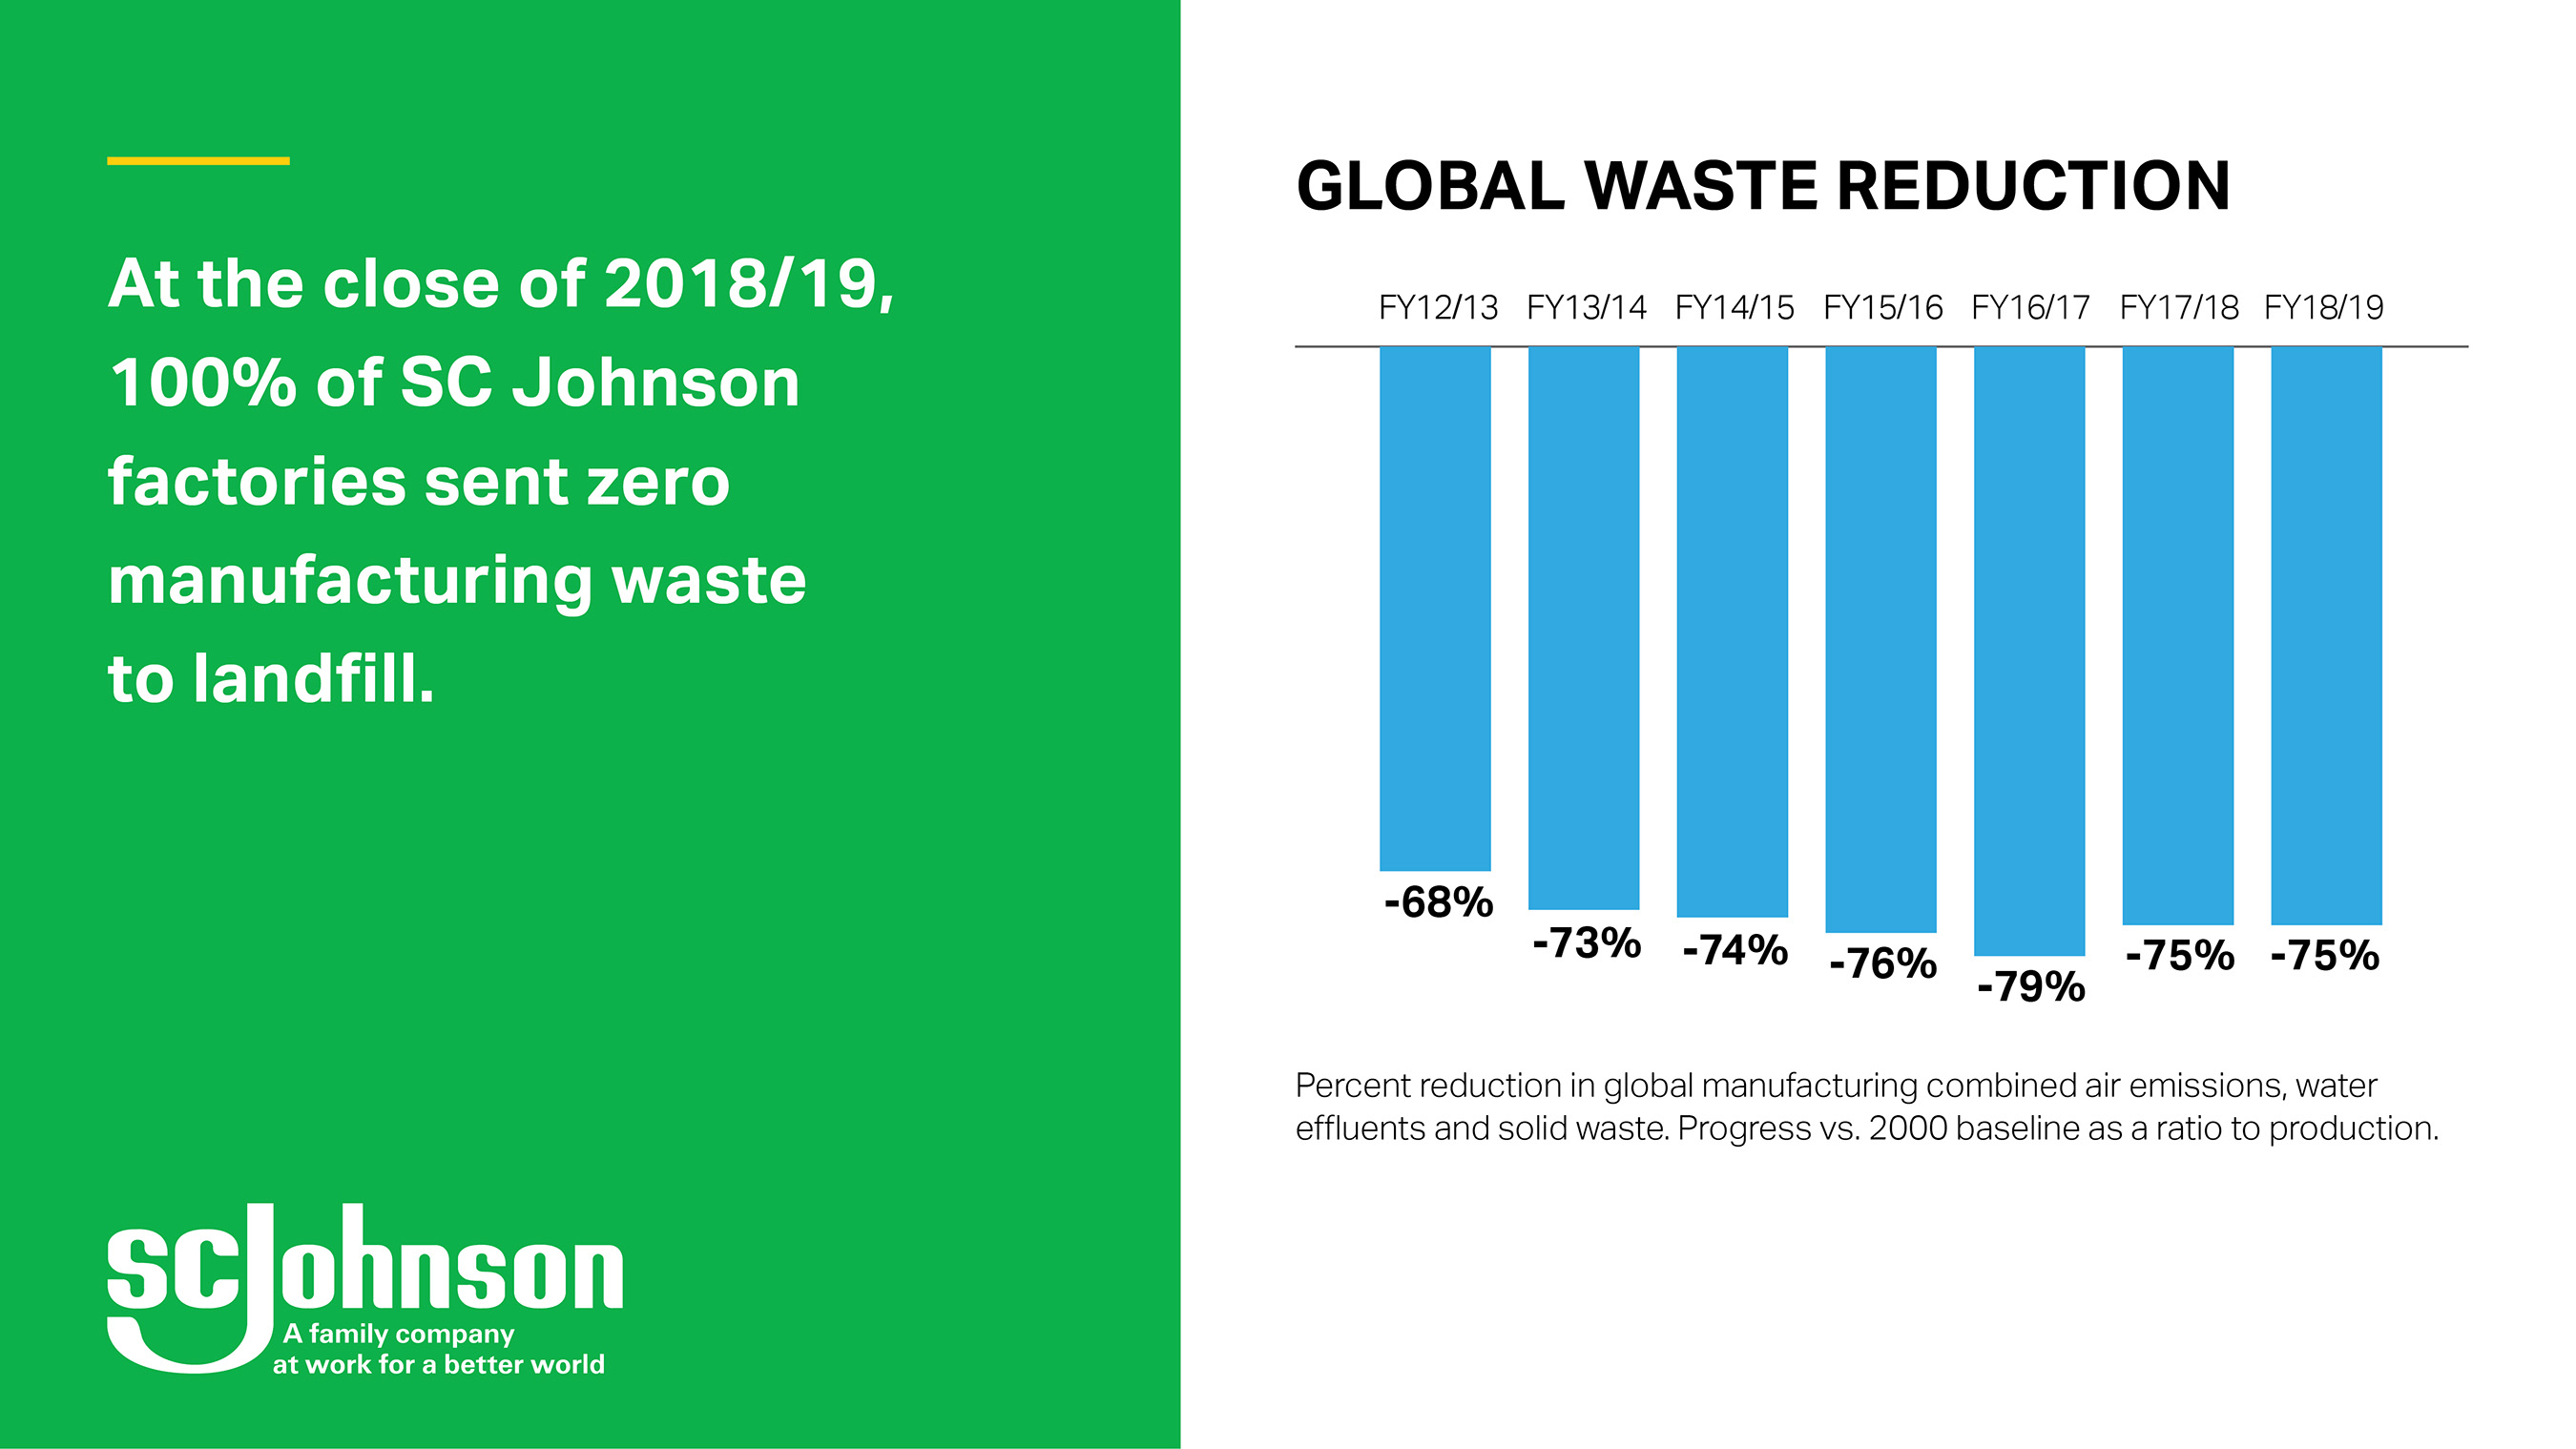 In 2018/19, SC Johnson achieved a 75% reduction in global waste vs 2000 baseline.